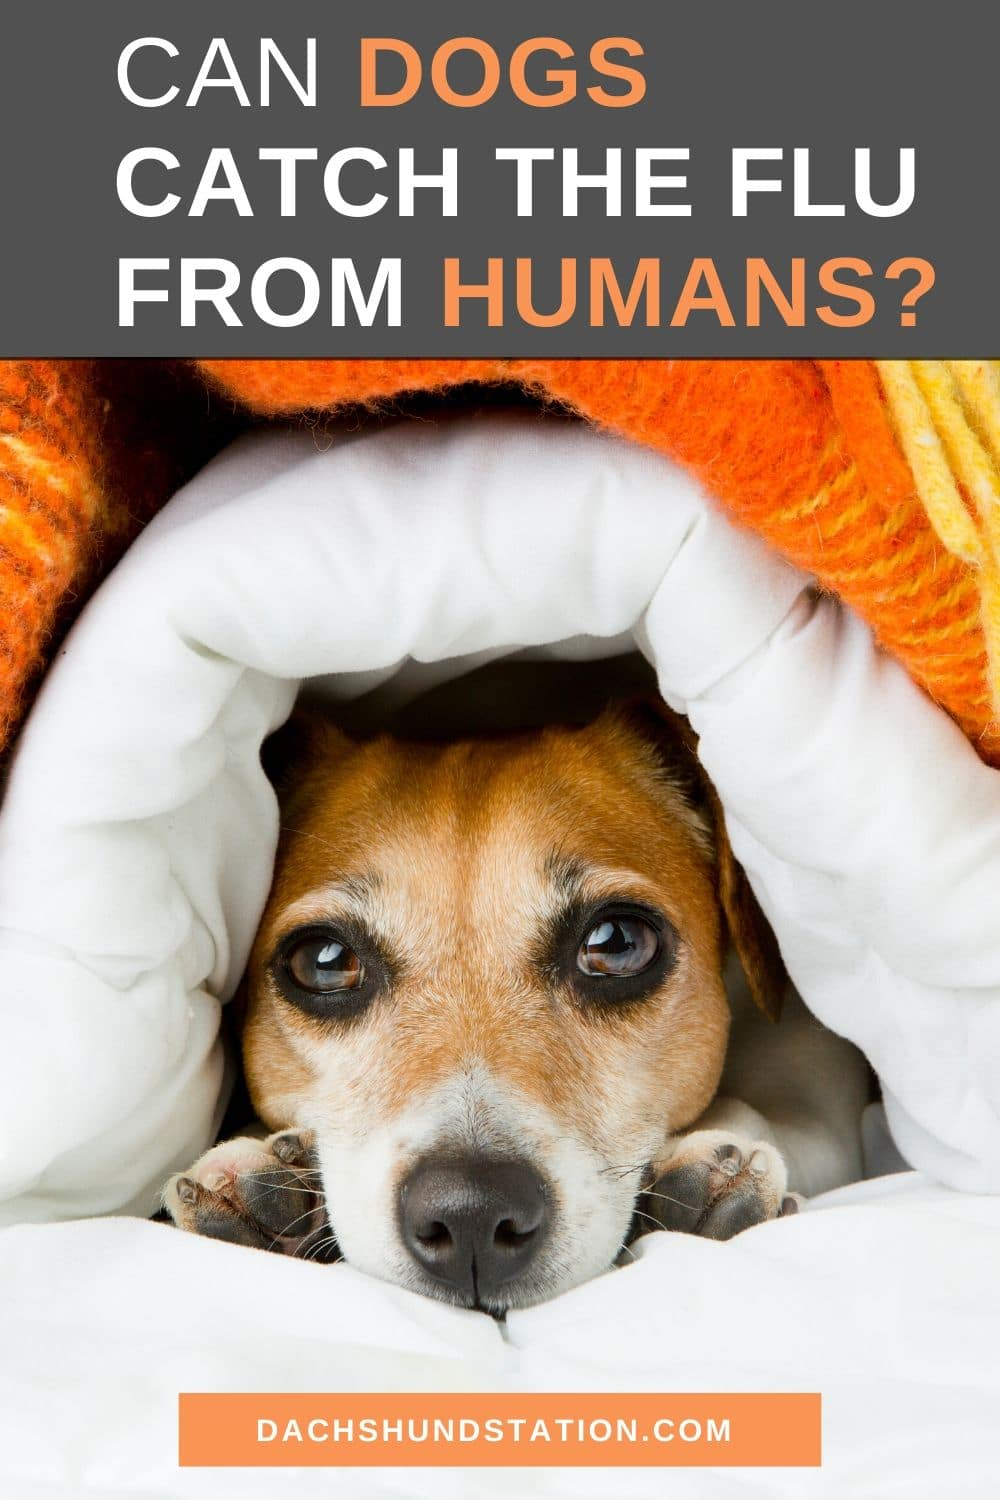 5 Diseases You Can Spread To Your Dog